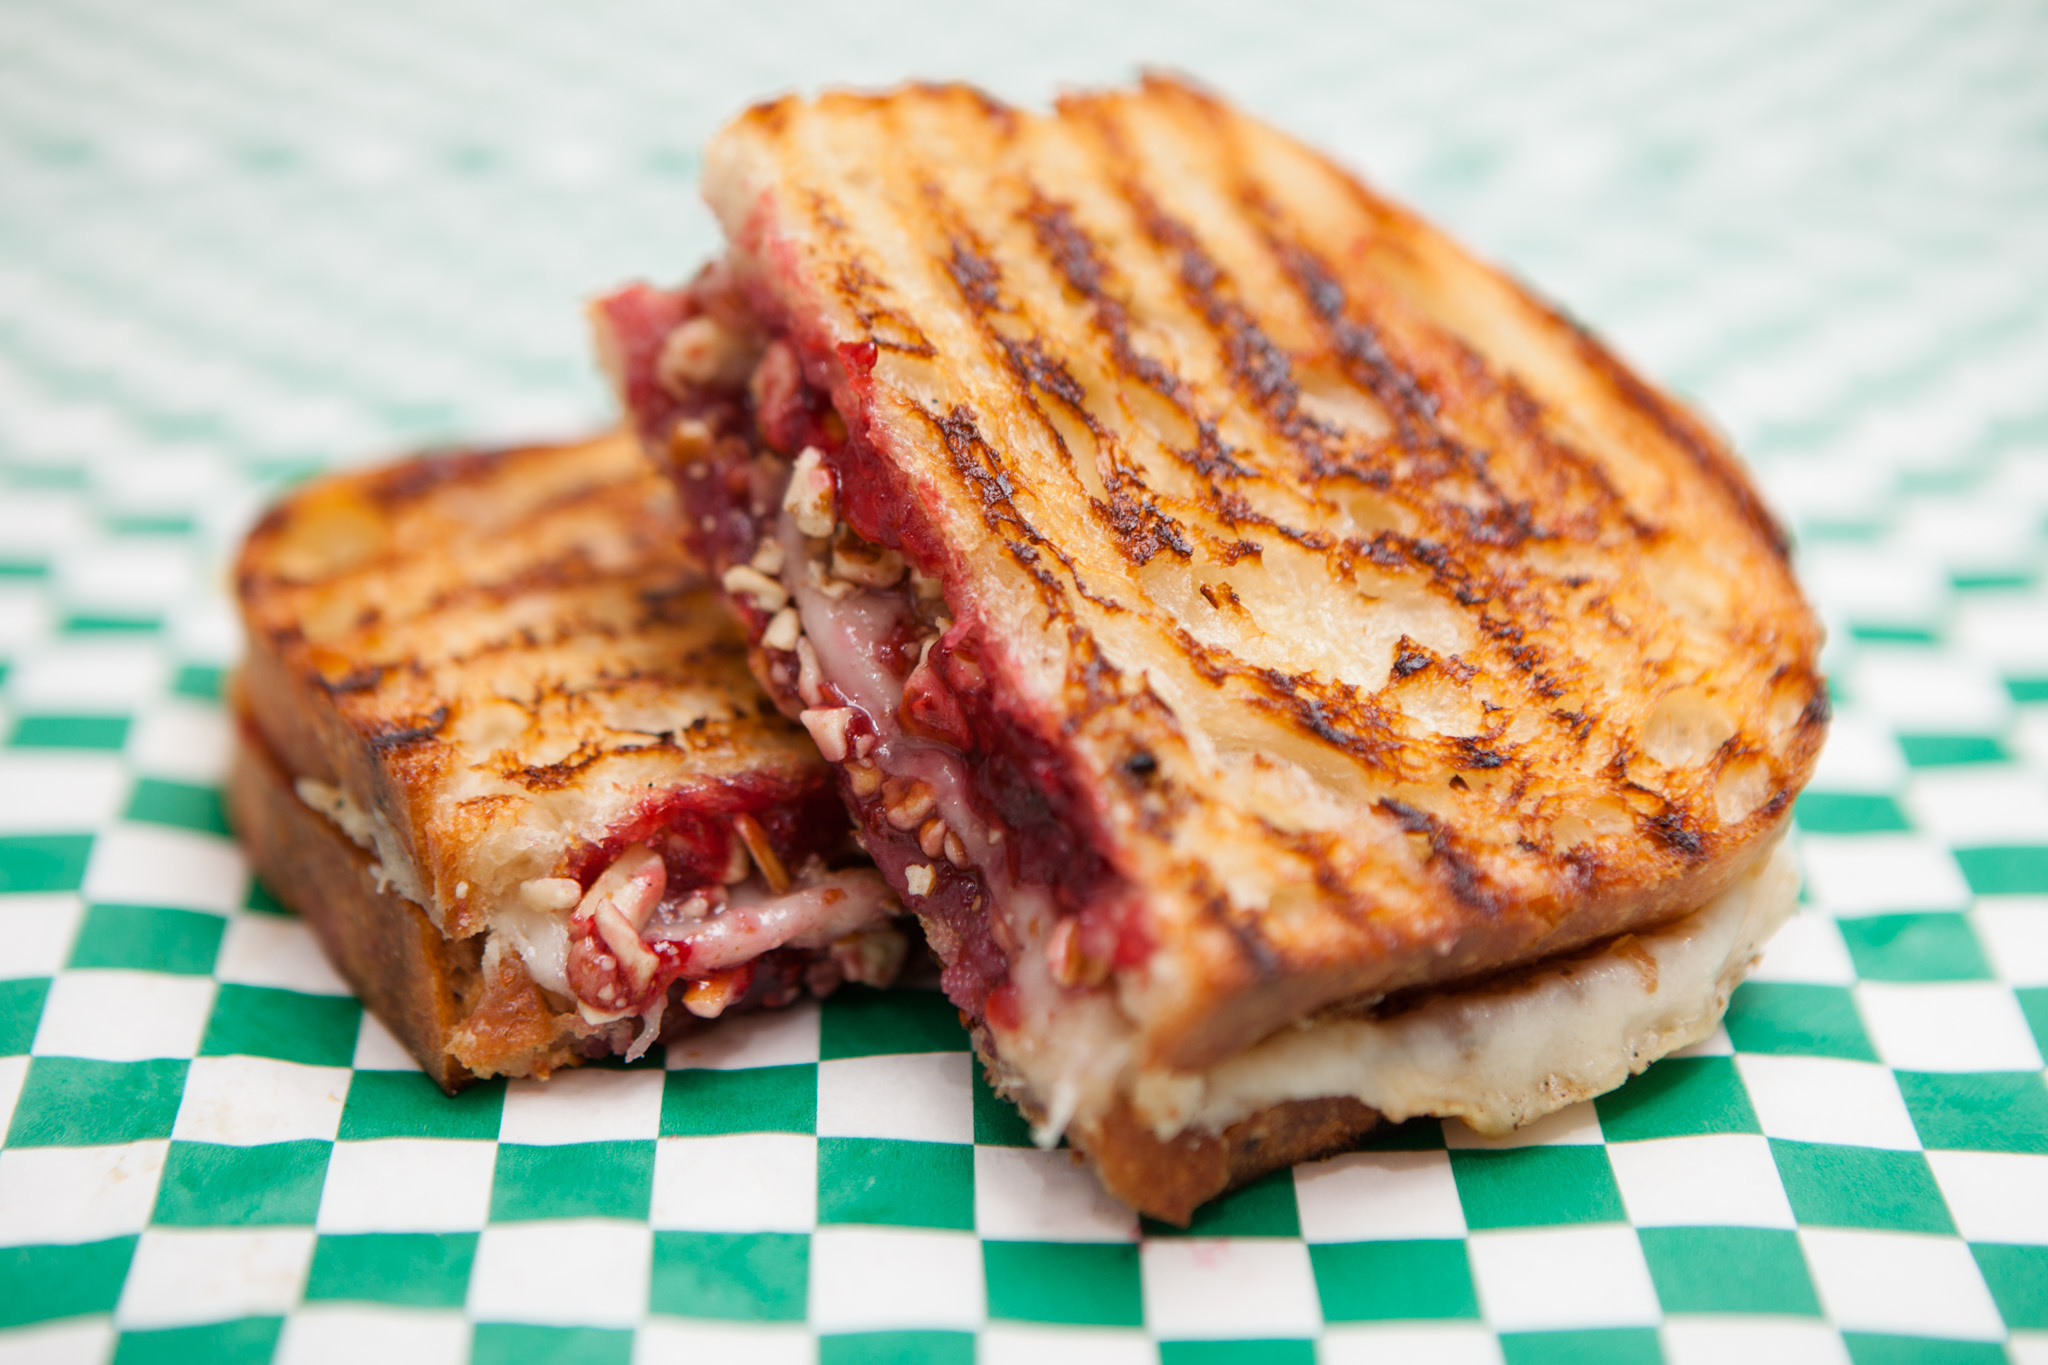 Gayle's Best Ever Grilled Cheese is now open in Block 37